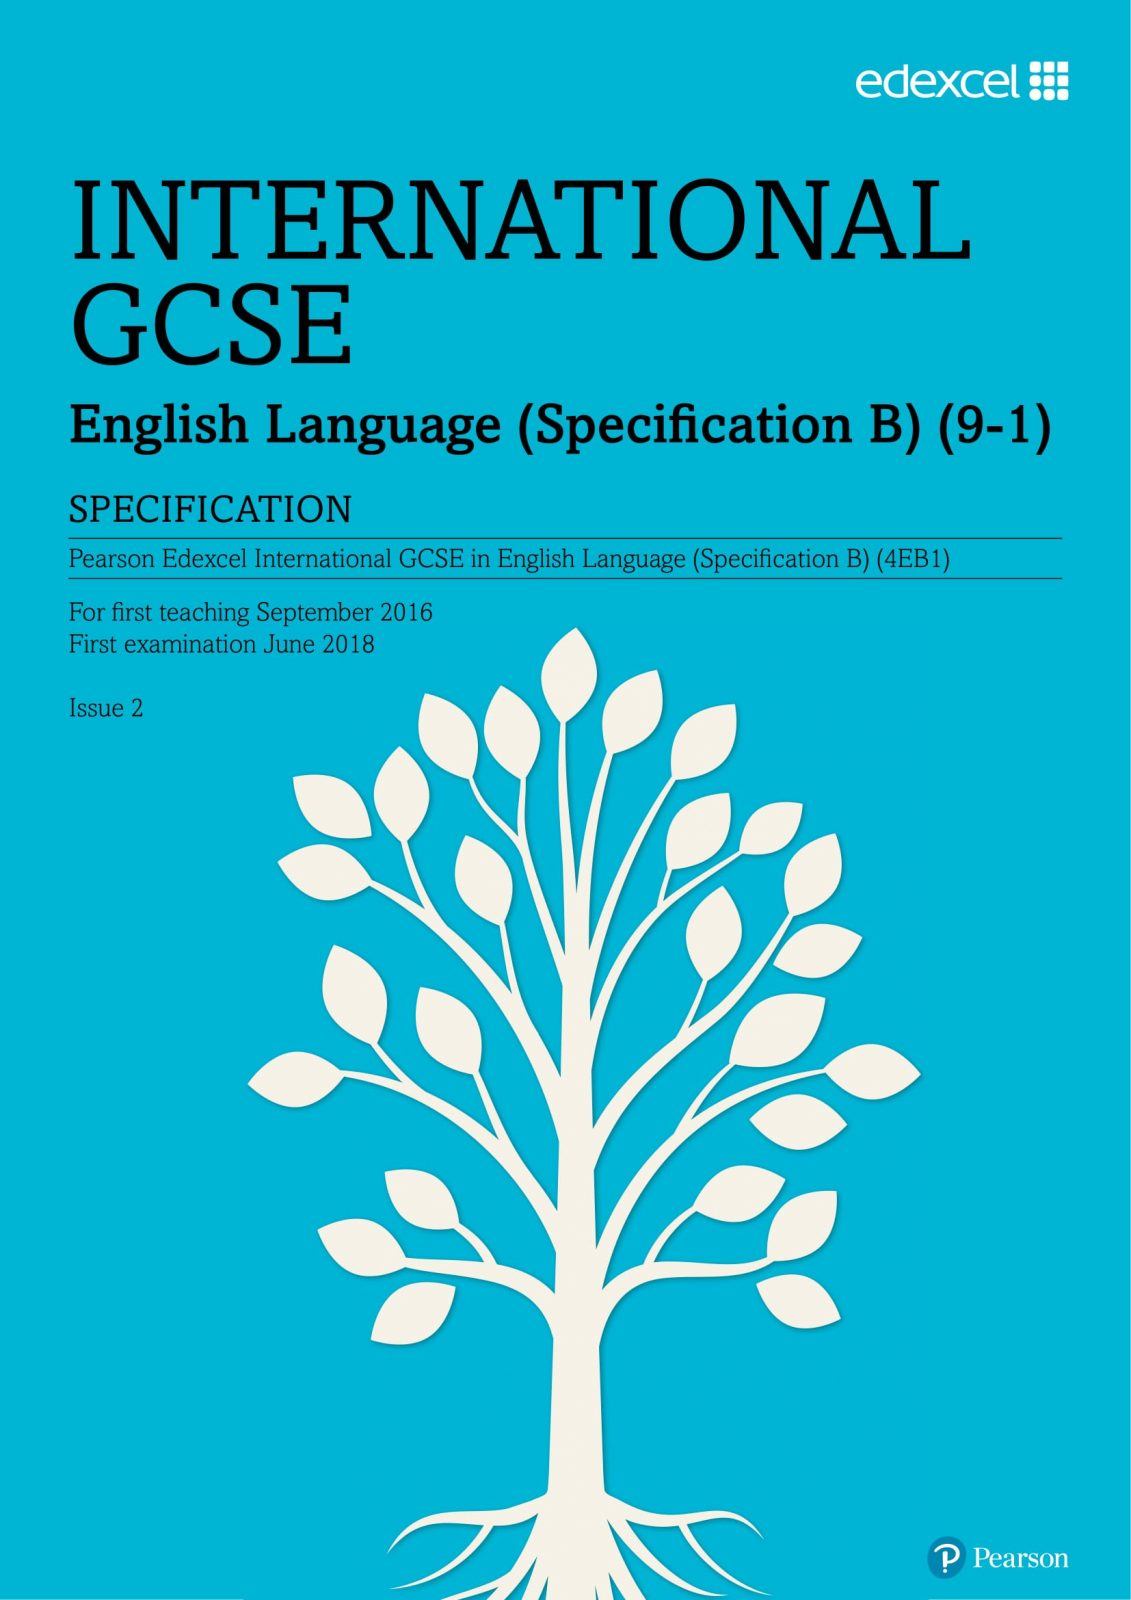 gsce english coursework The cambridge igcse english literature syllabus enables learners to read, interpret and evaluate texts through the study of literature in english.